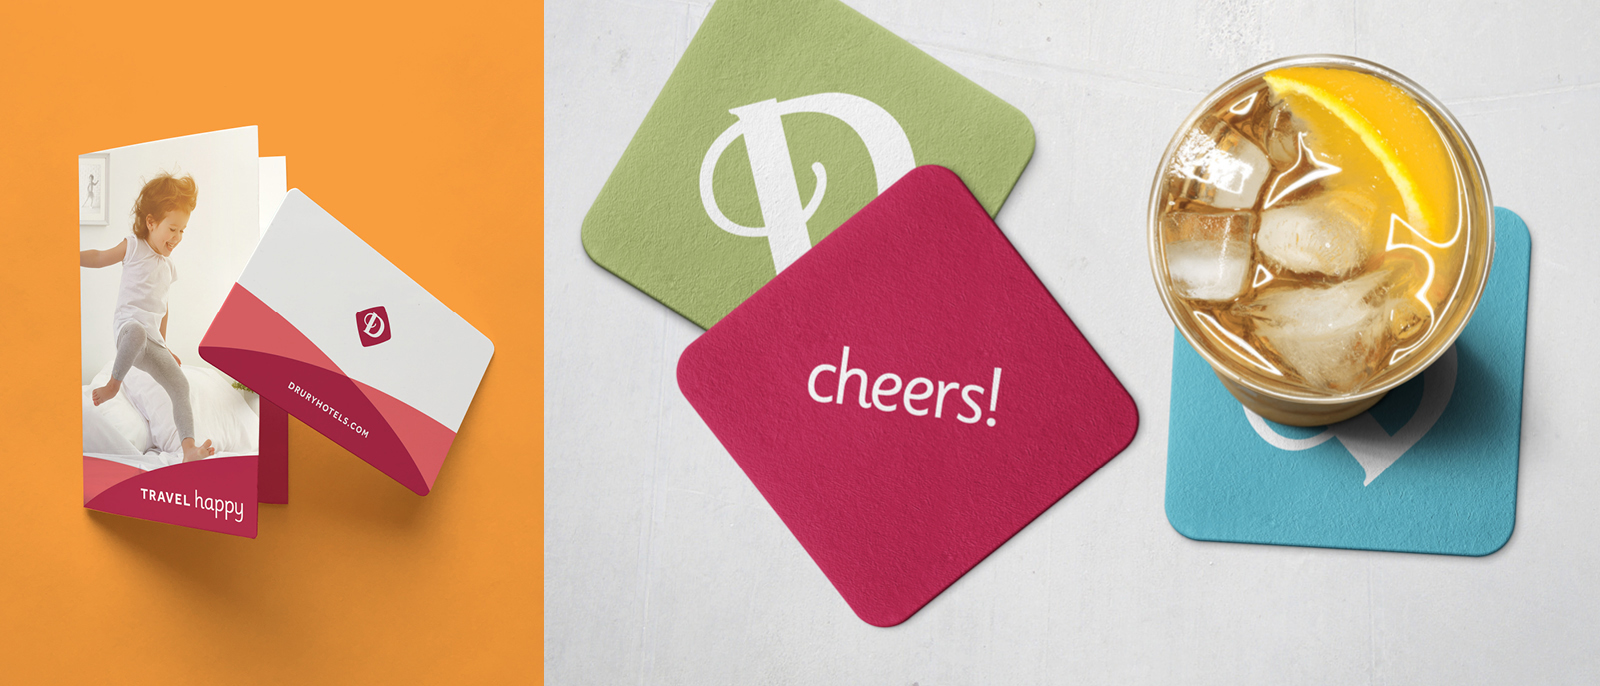 Drury Hotels branded room key and coasters